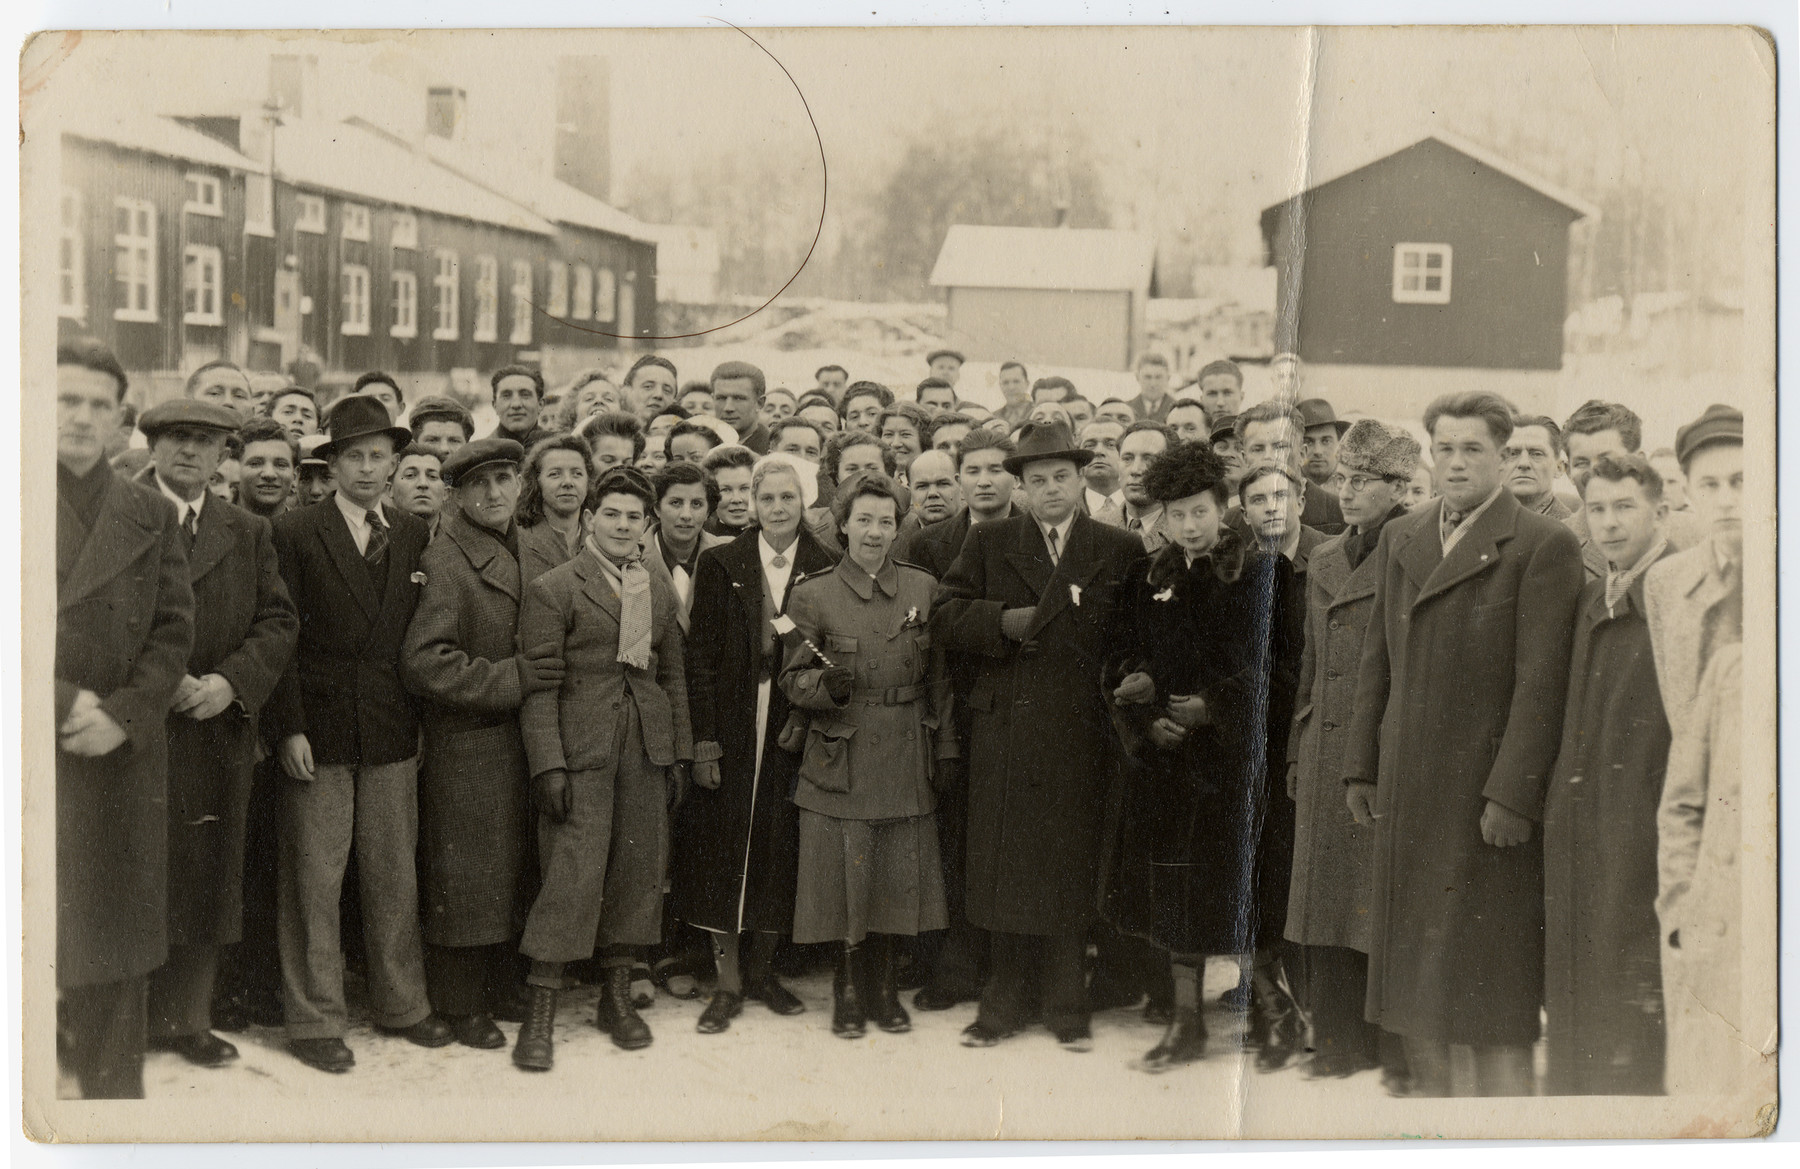 Group portrait of Jewish DPs in a camp in Sweden.   Among those represented is Chaim Kozienicki (fifth from the left in the front row).